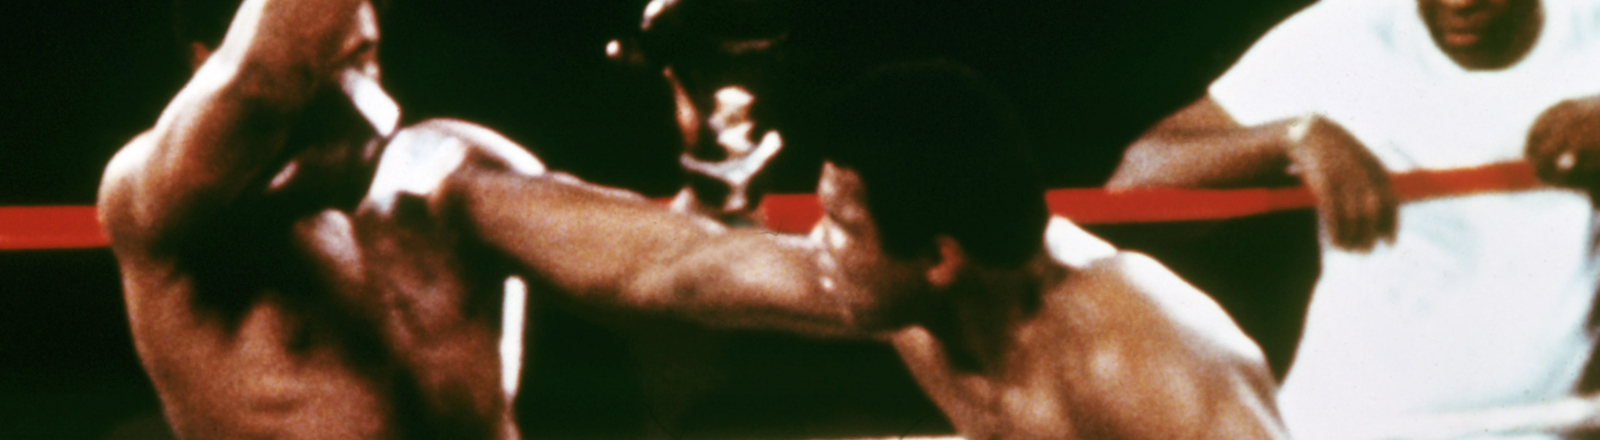 """Rumble in the Jungle"": Muhammad Ali (r) boxt am 30. Oktober 1974 beim WM-Kampf in Kinshasa, Zaire, gegen George Forman."